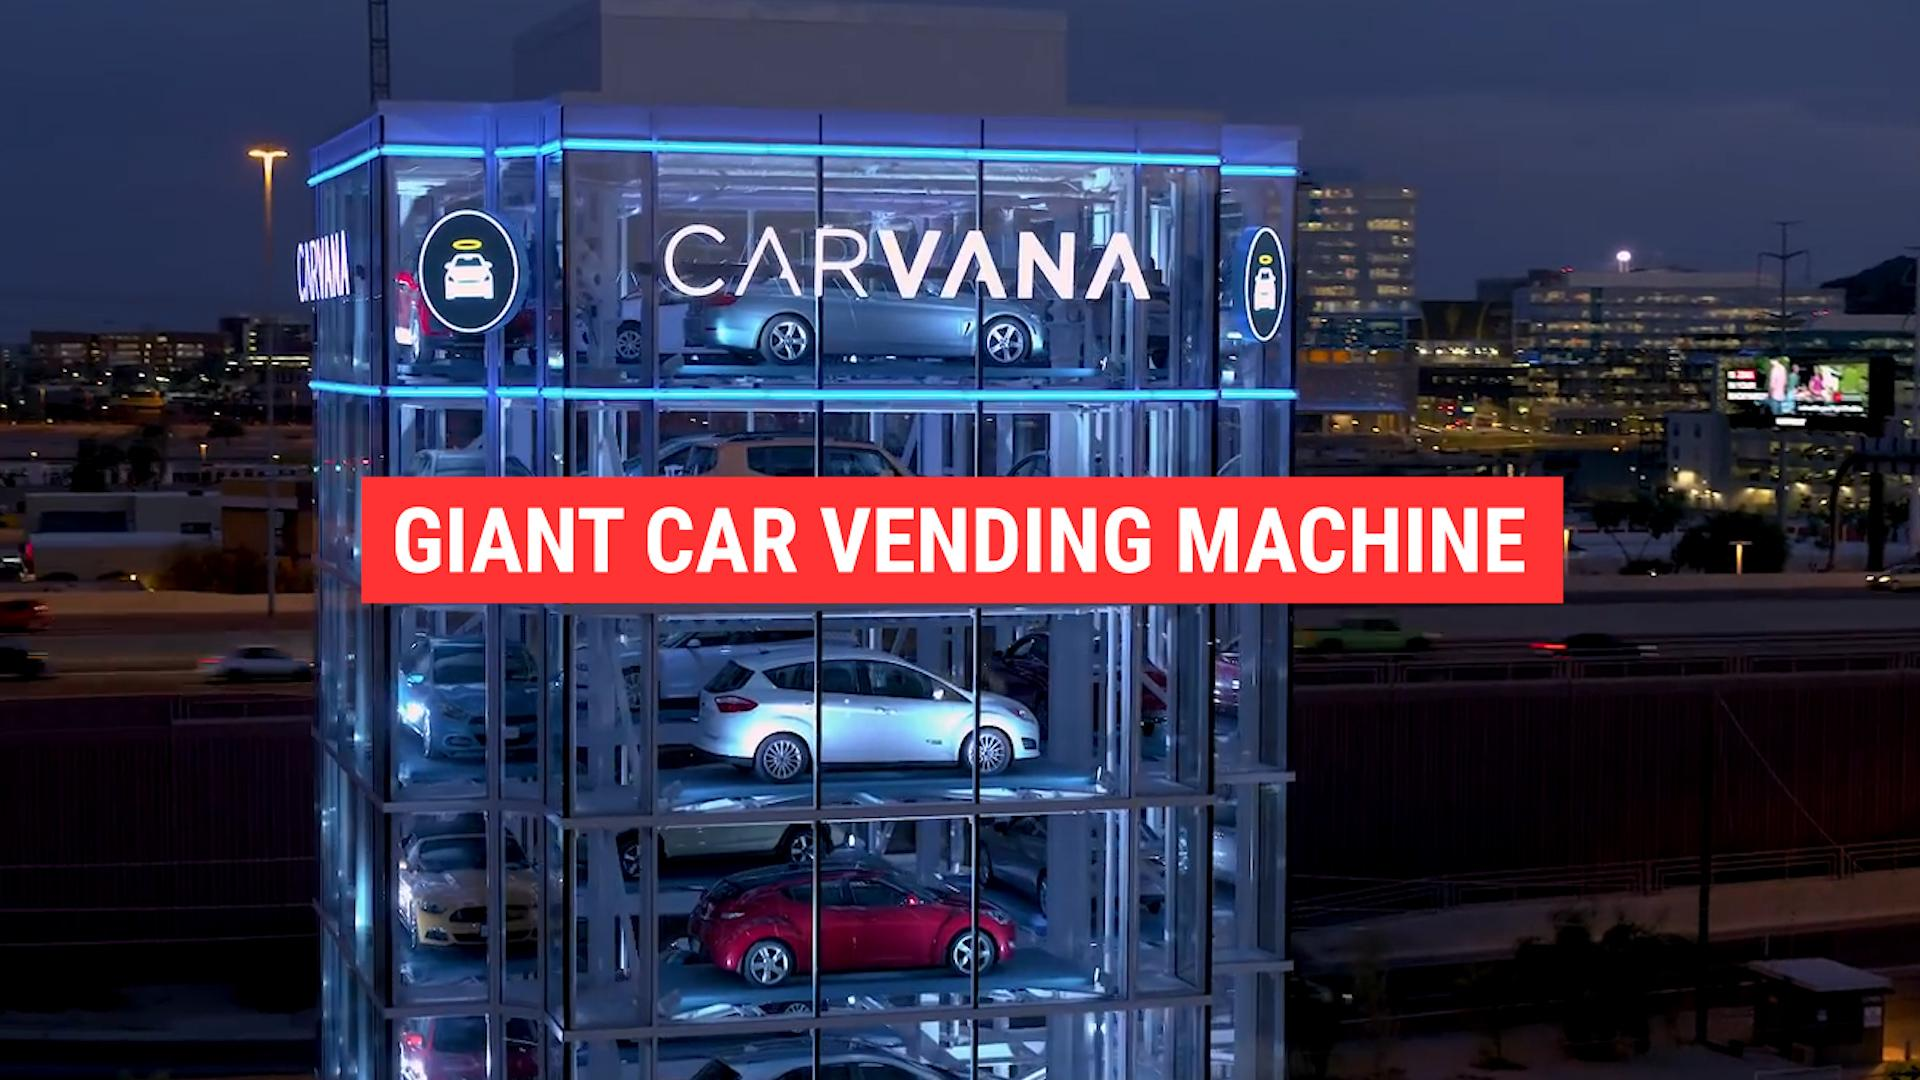 This Giant Vending Machine Sells Cars Autoblog